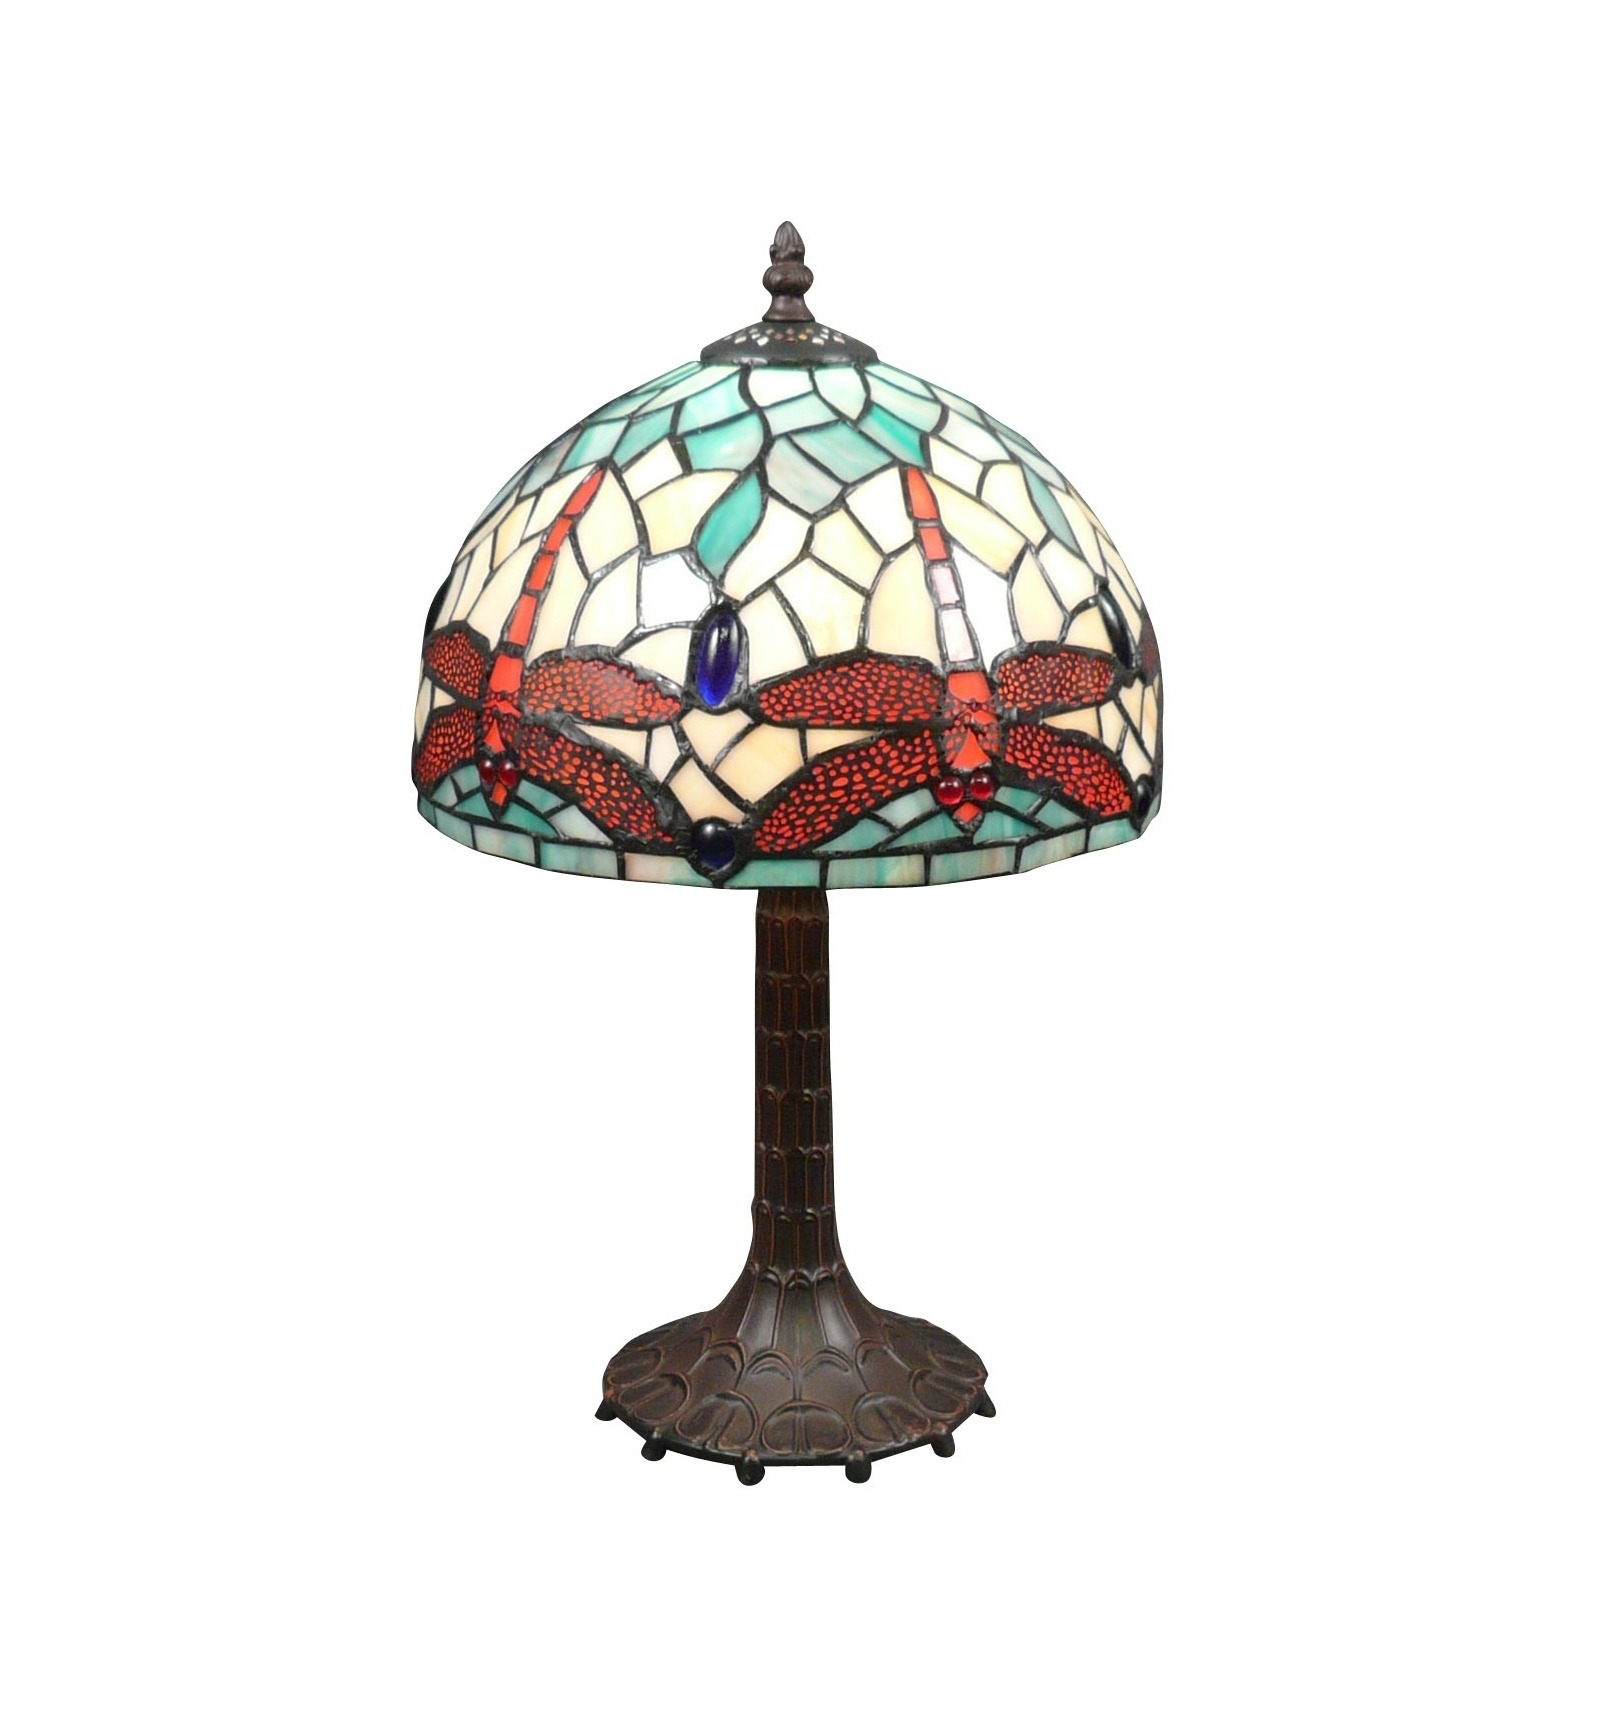 Tiffany Art Nouveau Dragonfly Lamp